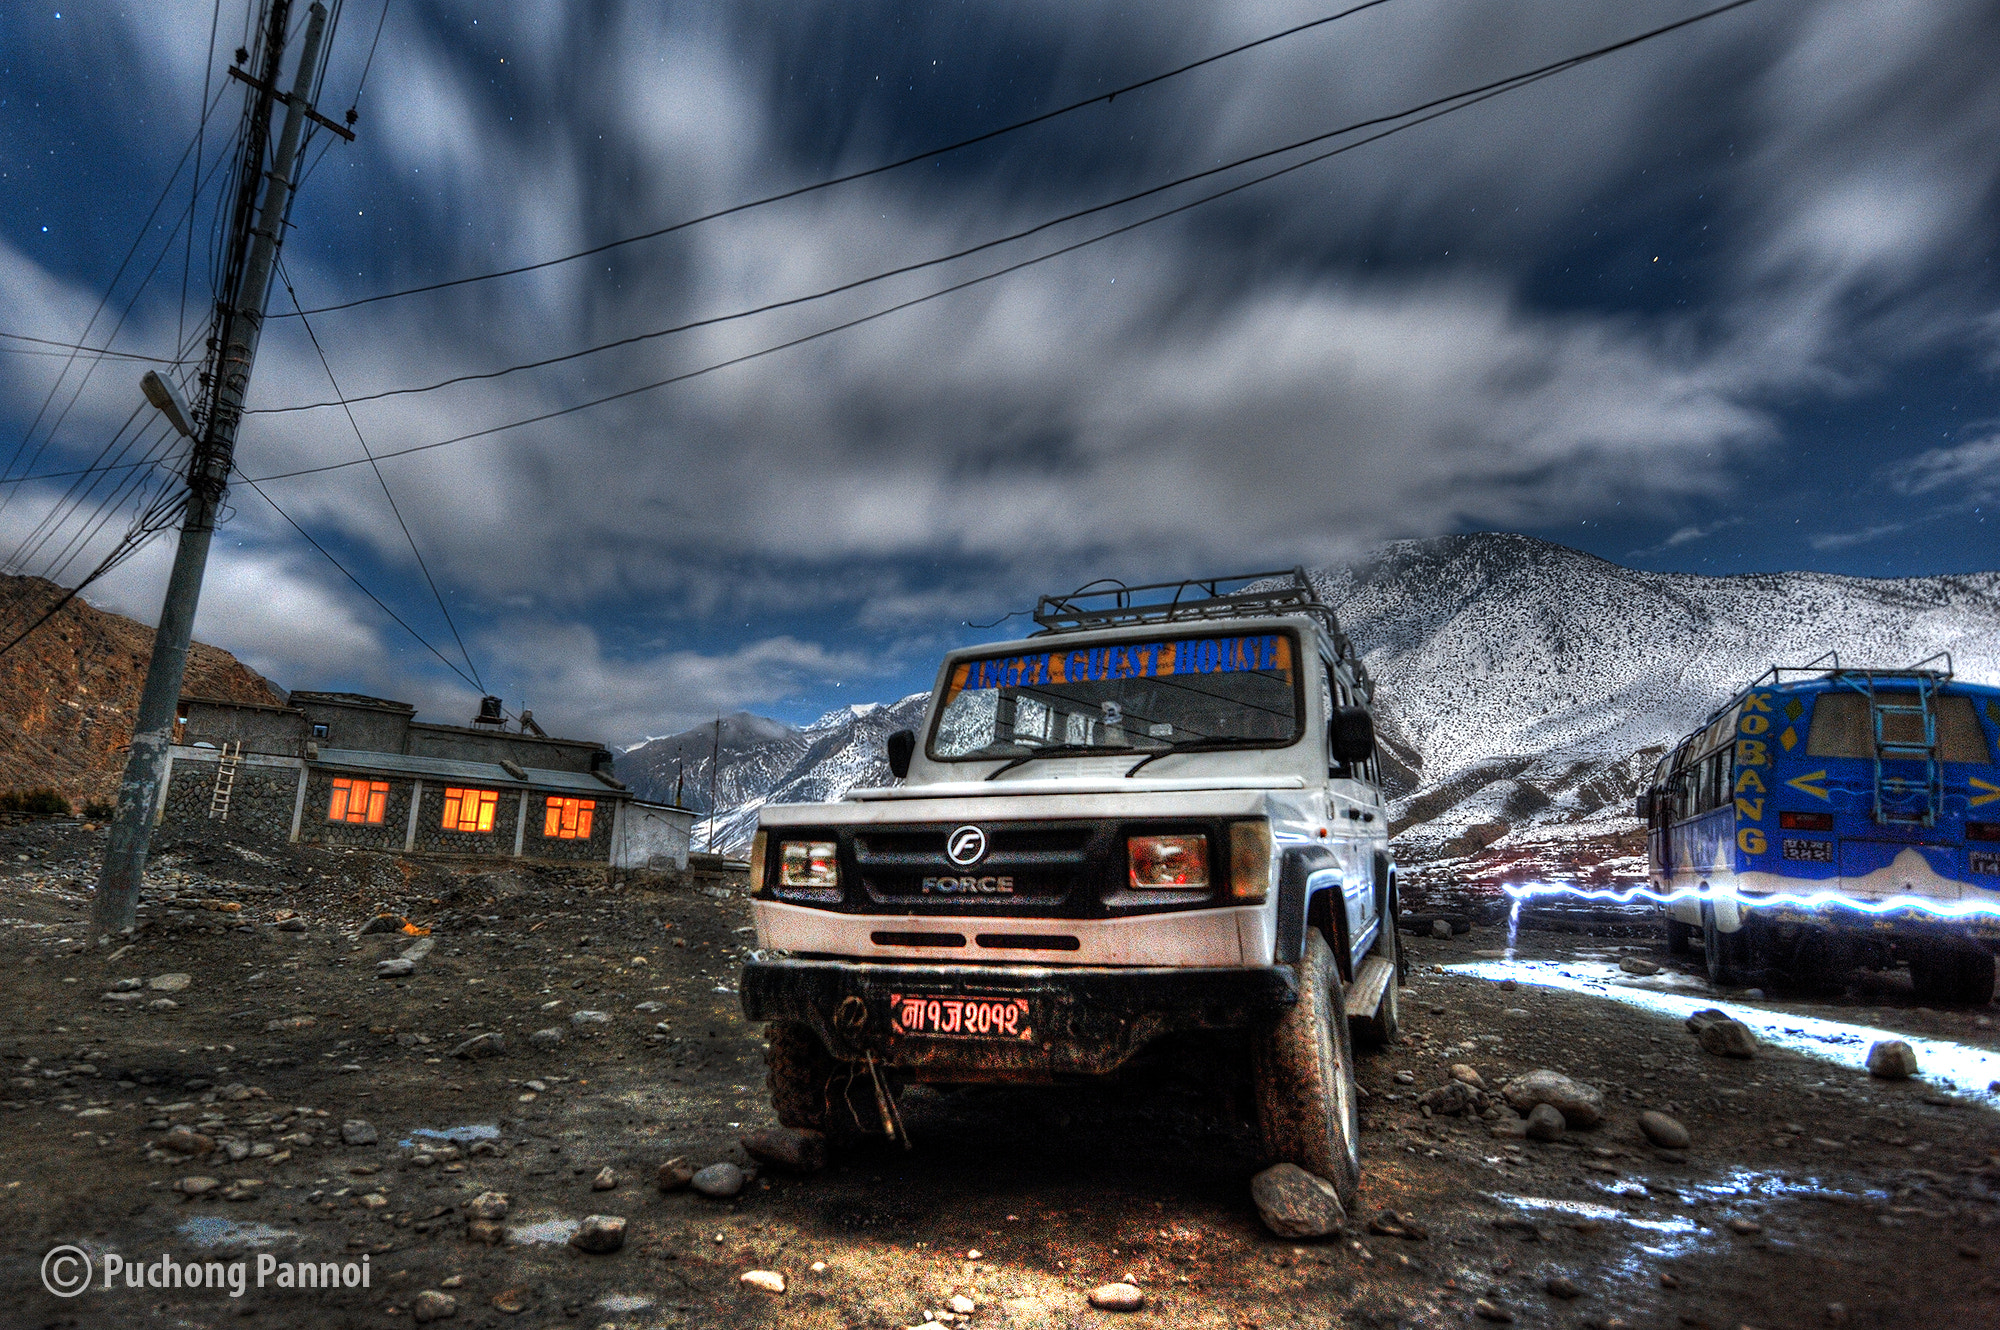 Photograph One night in Jomsom by Puchong Pannoi on 500px